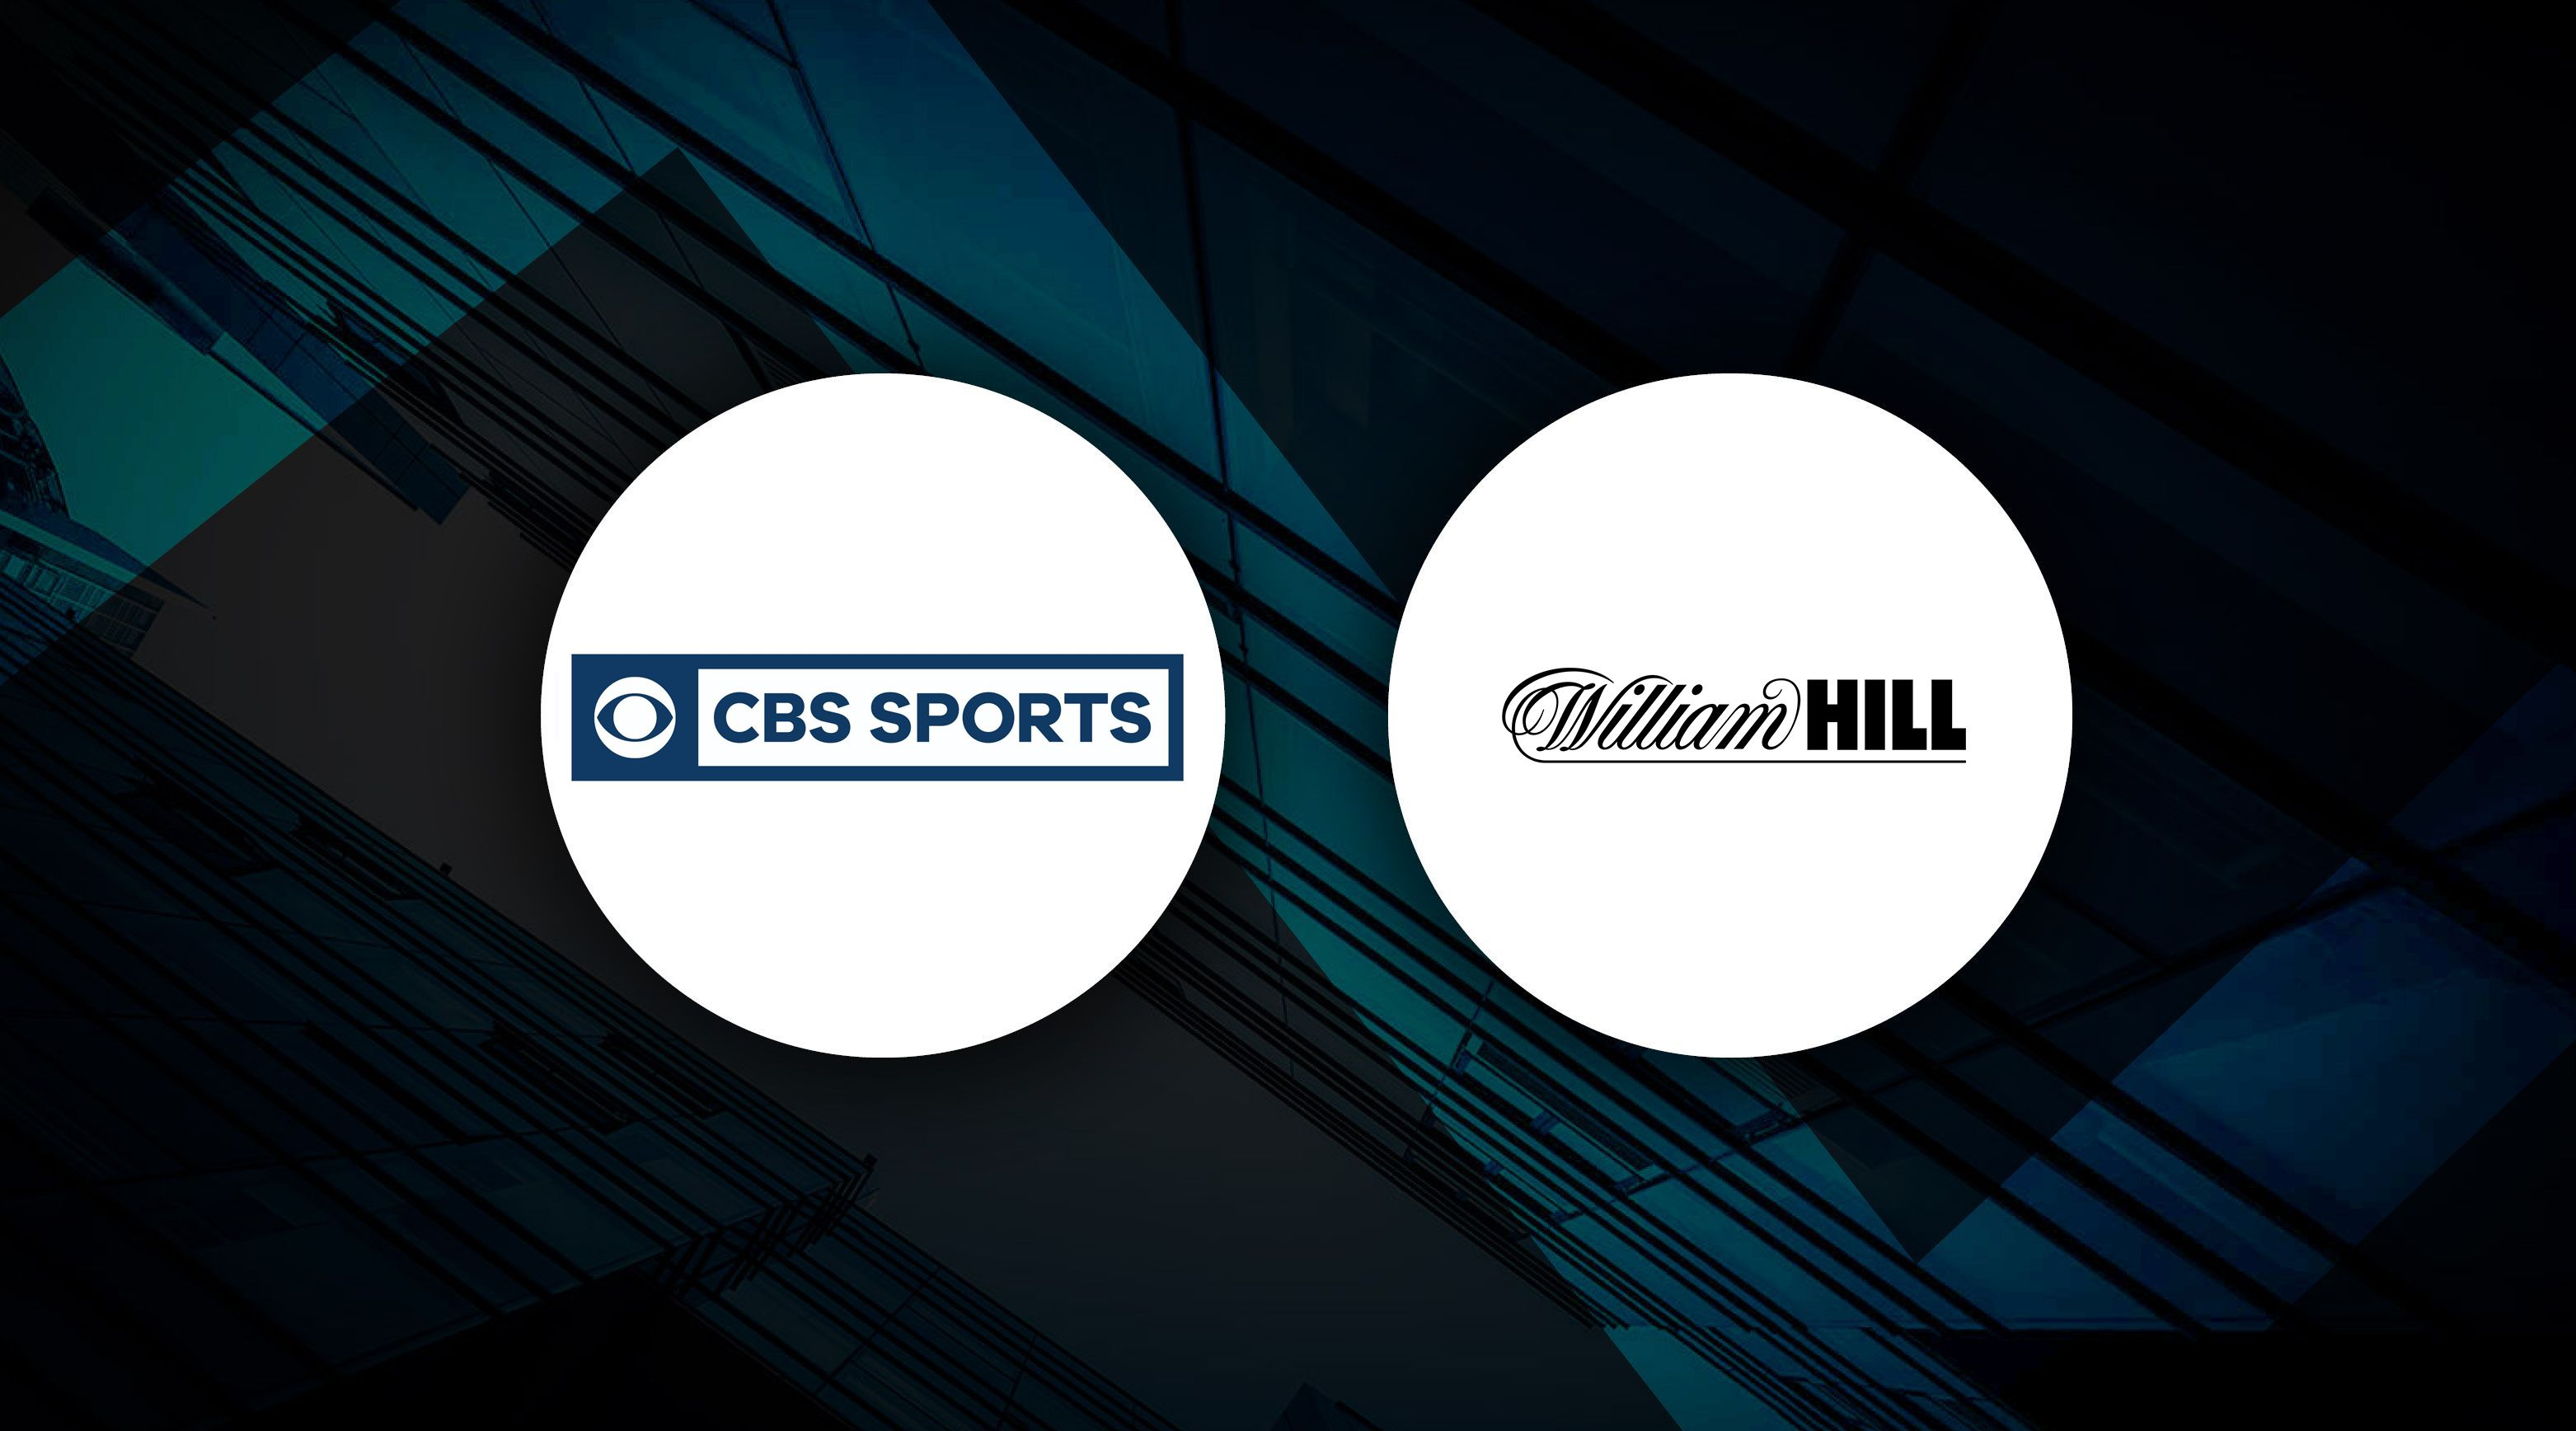 Partis Client CBS Sports Announce Major US Sports Betting Partnership With William Hill